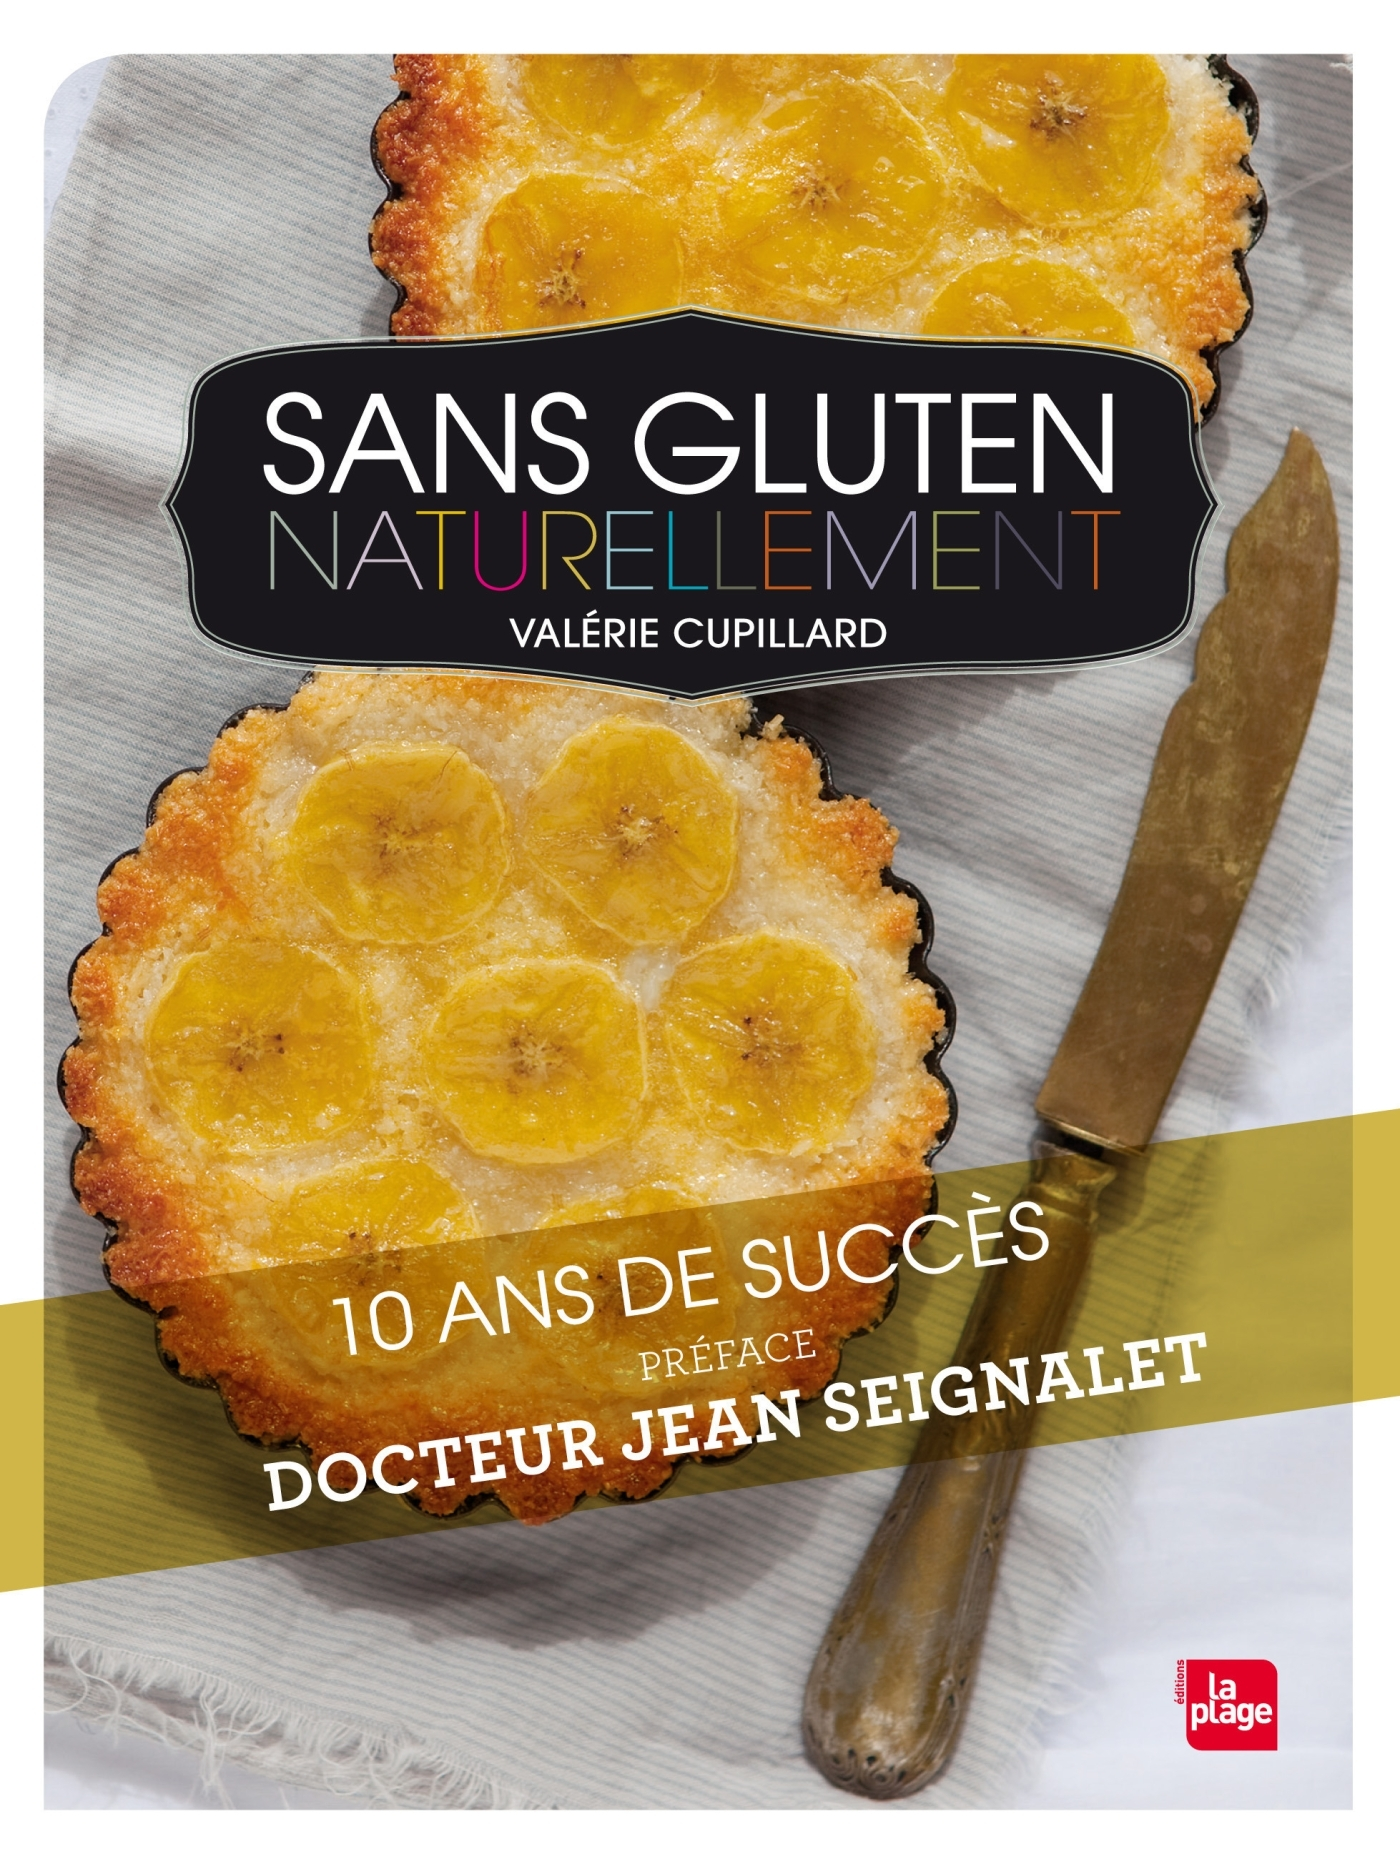 SANS GLUTEN NATURELLEMENT - ED ILLUSTREE